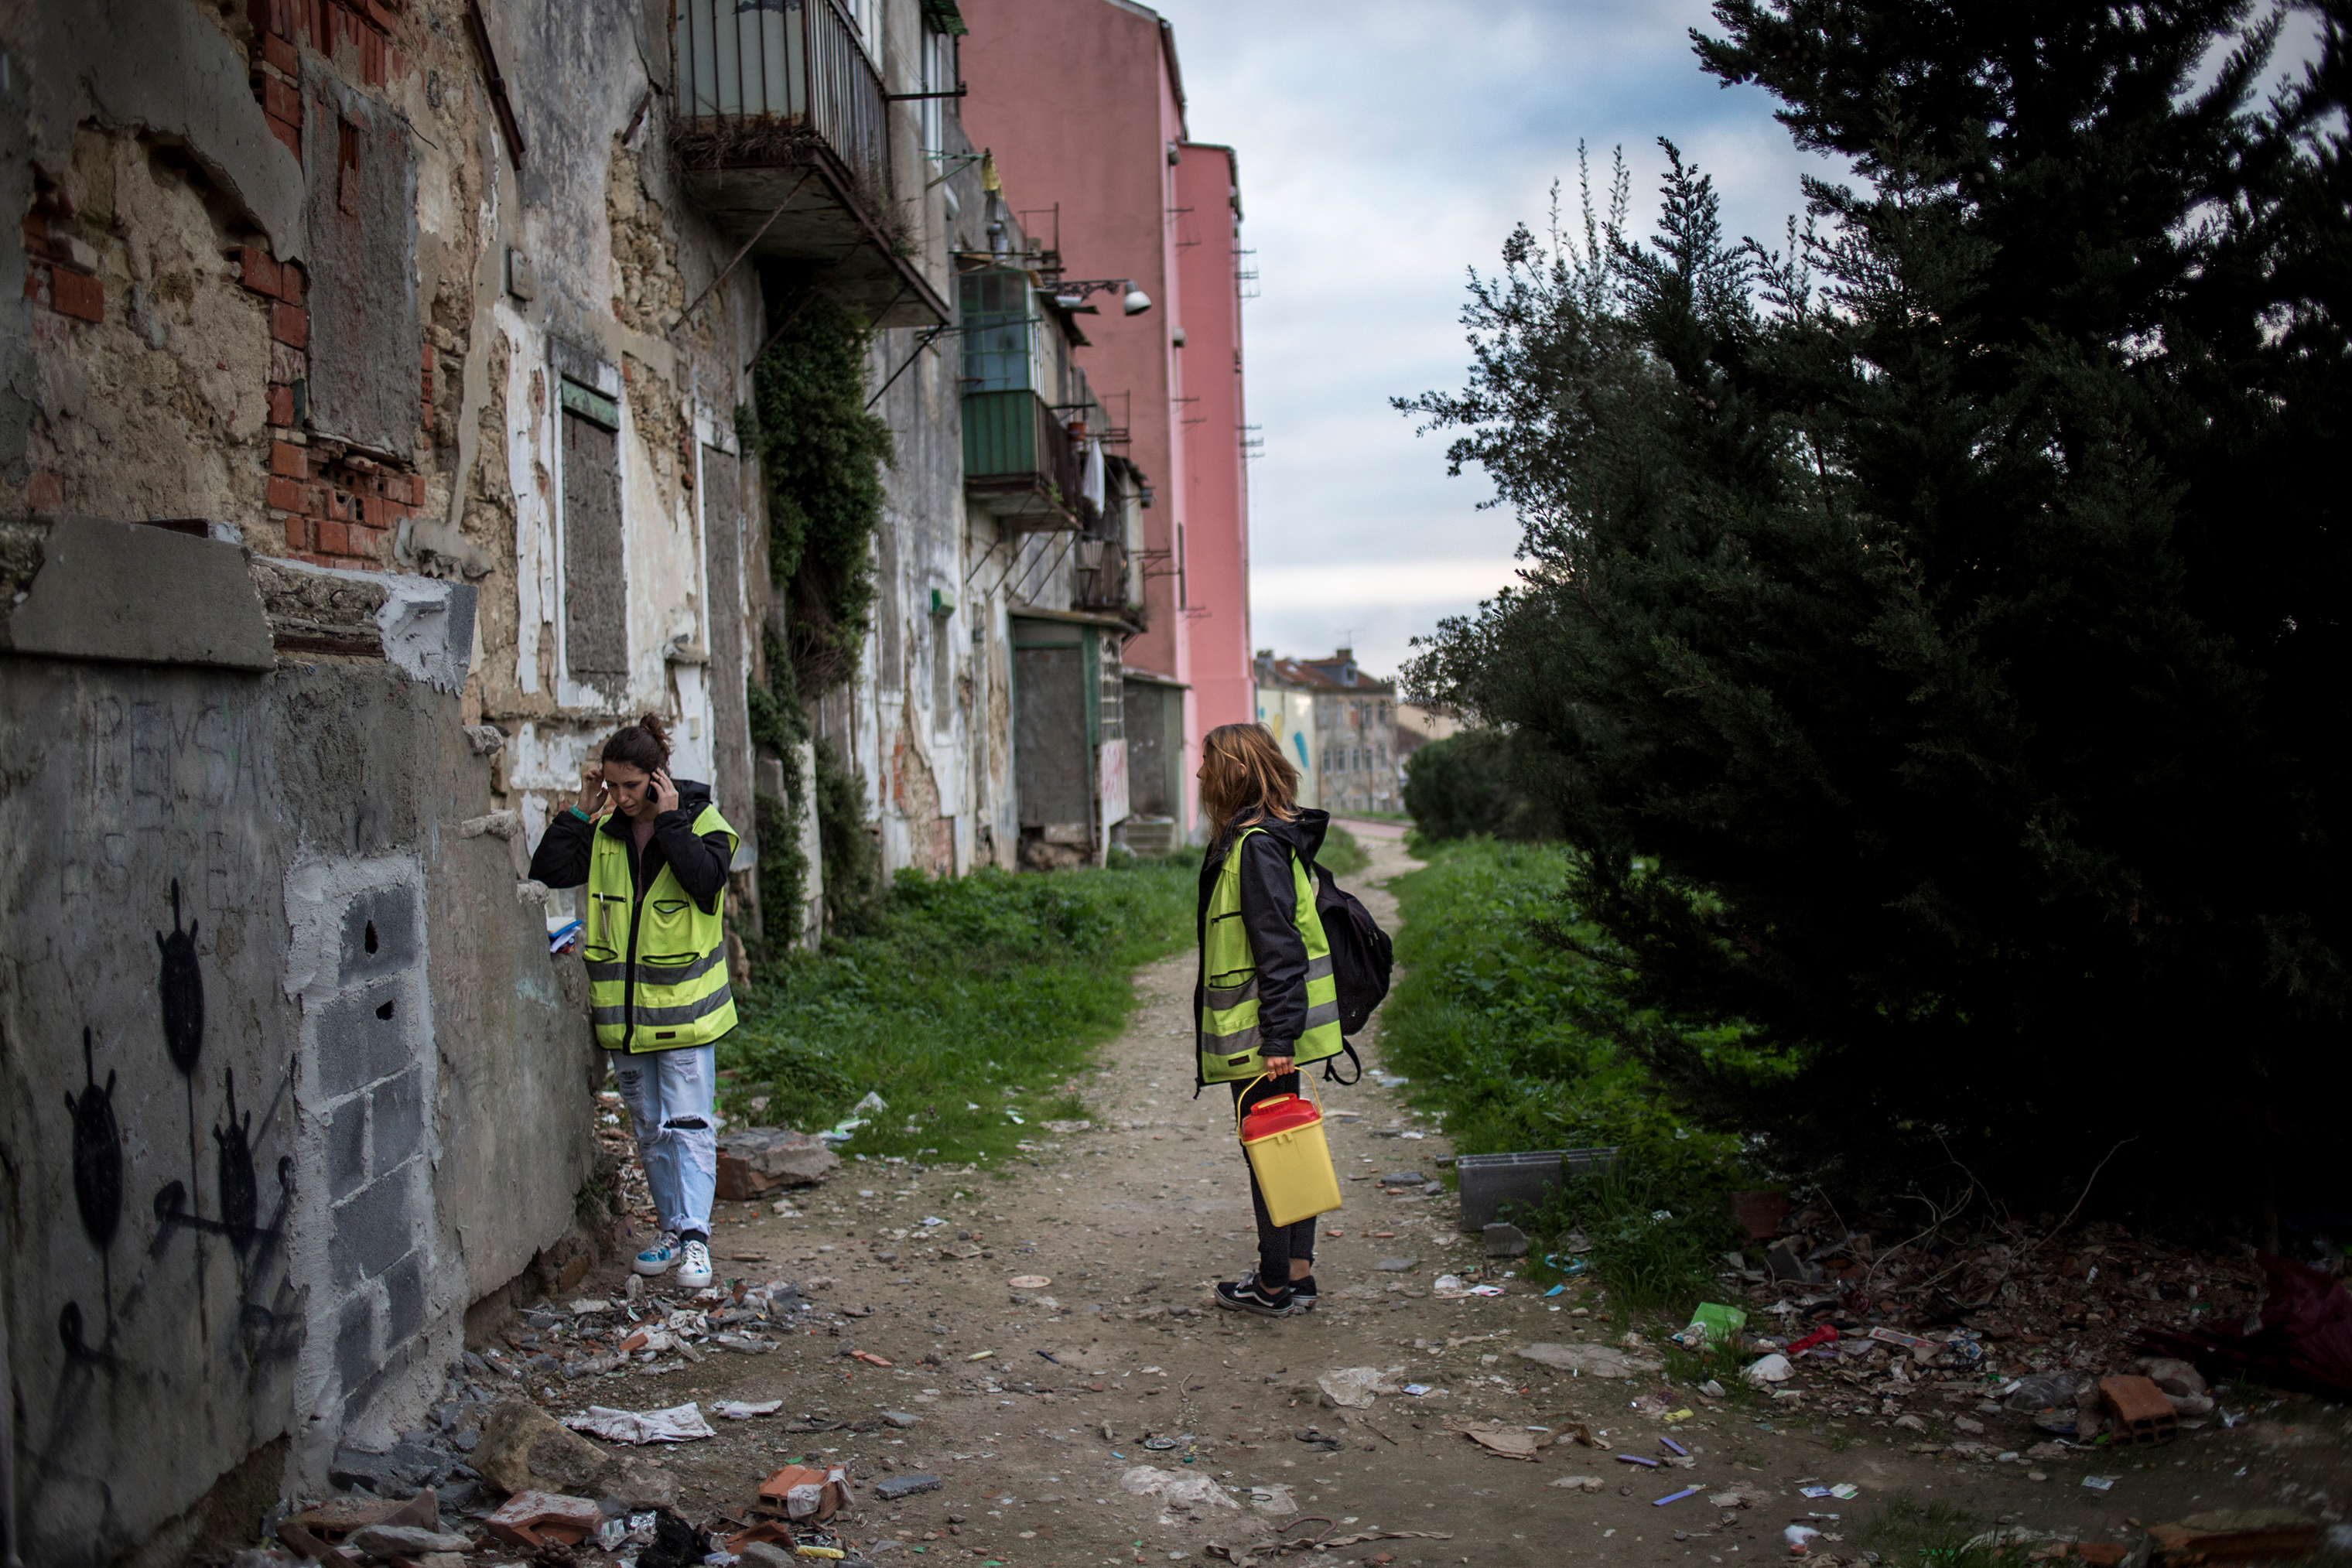 """Andreia, a social worker from Crescer, a state-funded outreach organization, plans her next move at one of Lisbon's many open-air """"consumption rooms,"""" January 12, 2017. She and Rita, a psychologist, are a part of the first line of help in the Portuguese Harm Reduction Policy."""